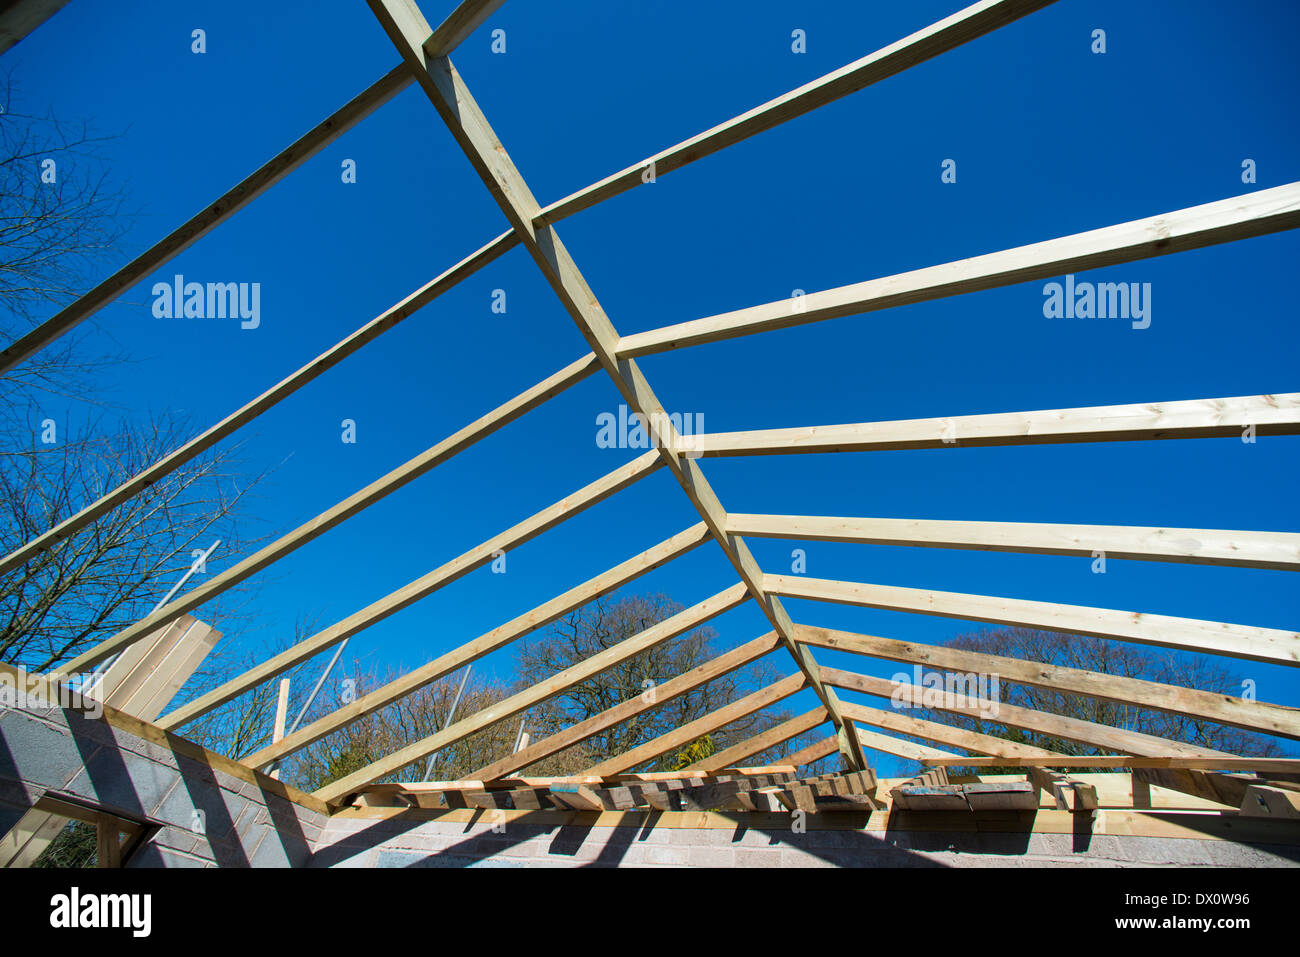 Construction work on a house. - Stock Image